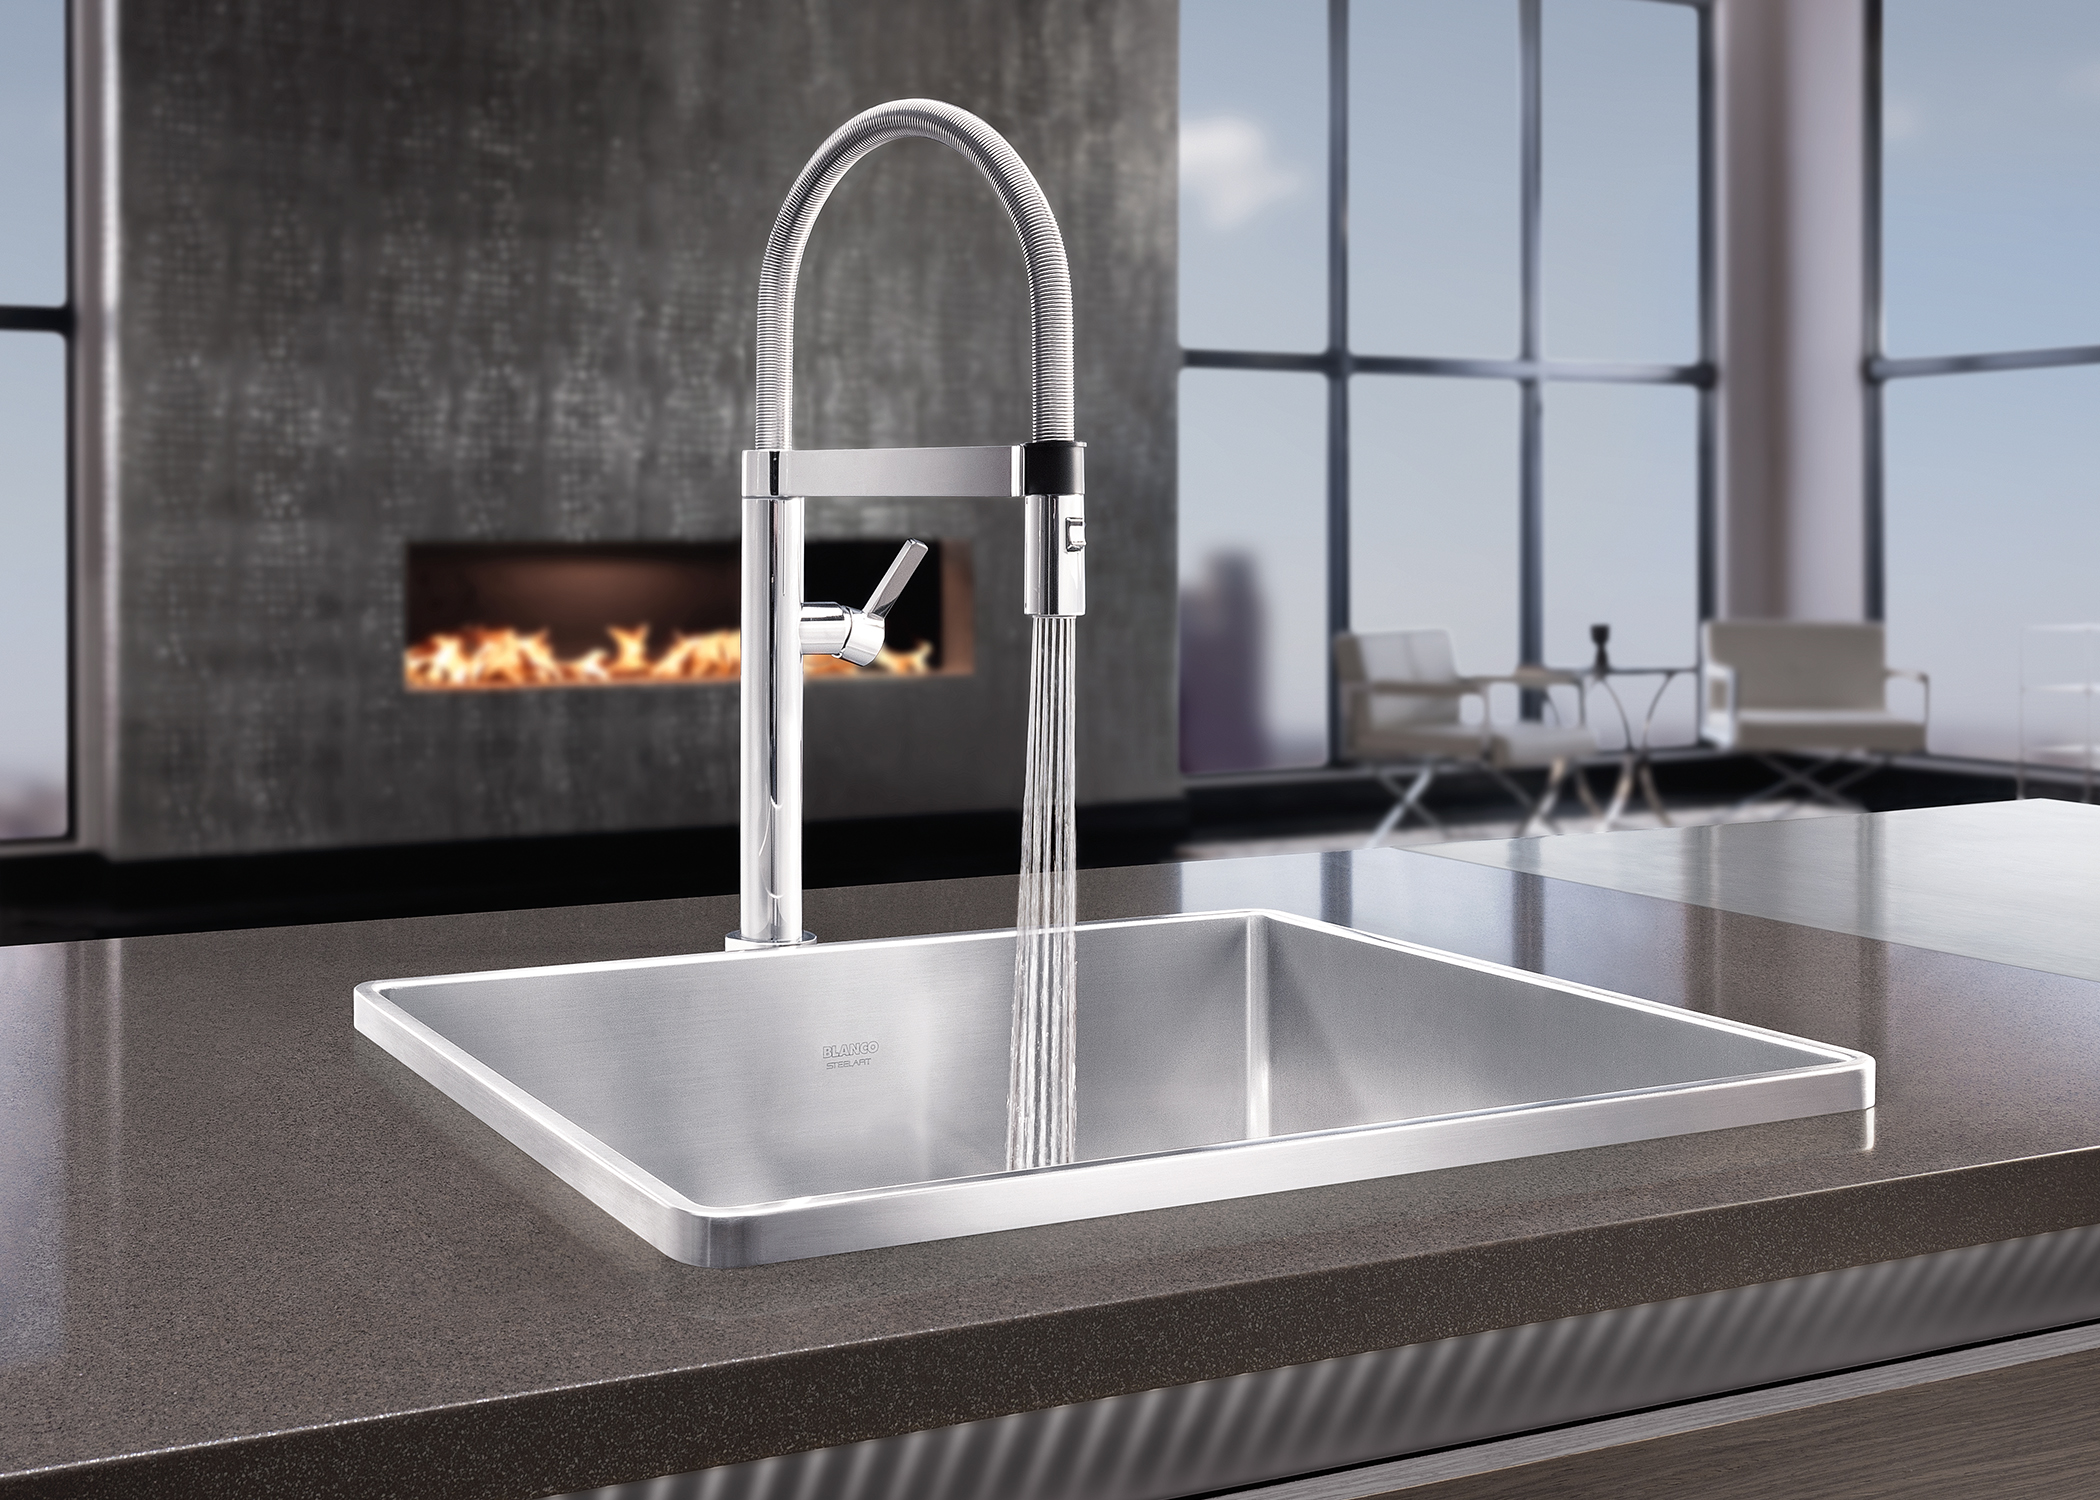 Blanco Faucets Usa : Consumers still want to work in a gourmet kitchen inspired by world ...